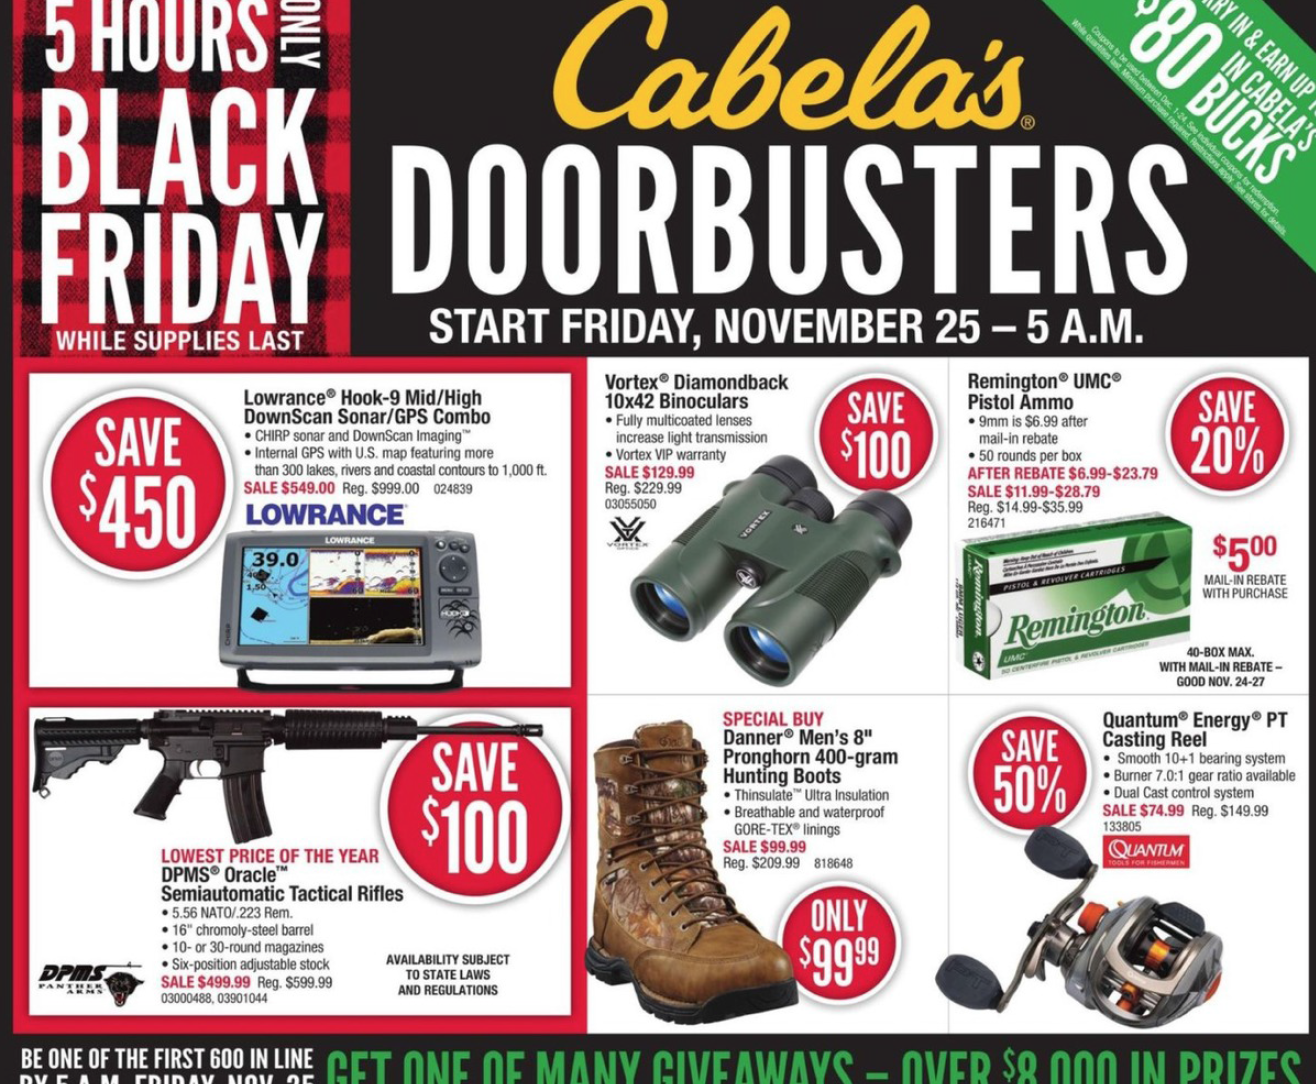 cabela's black friday deals 2016 – full ad scan - the gazette review, Fish Finder